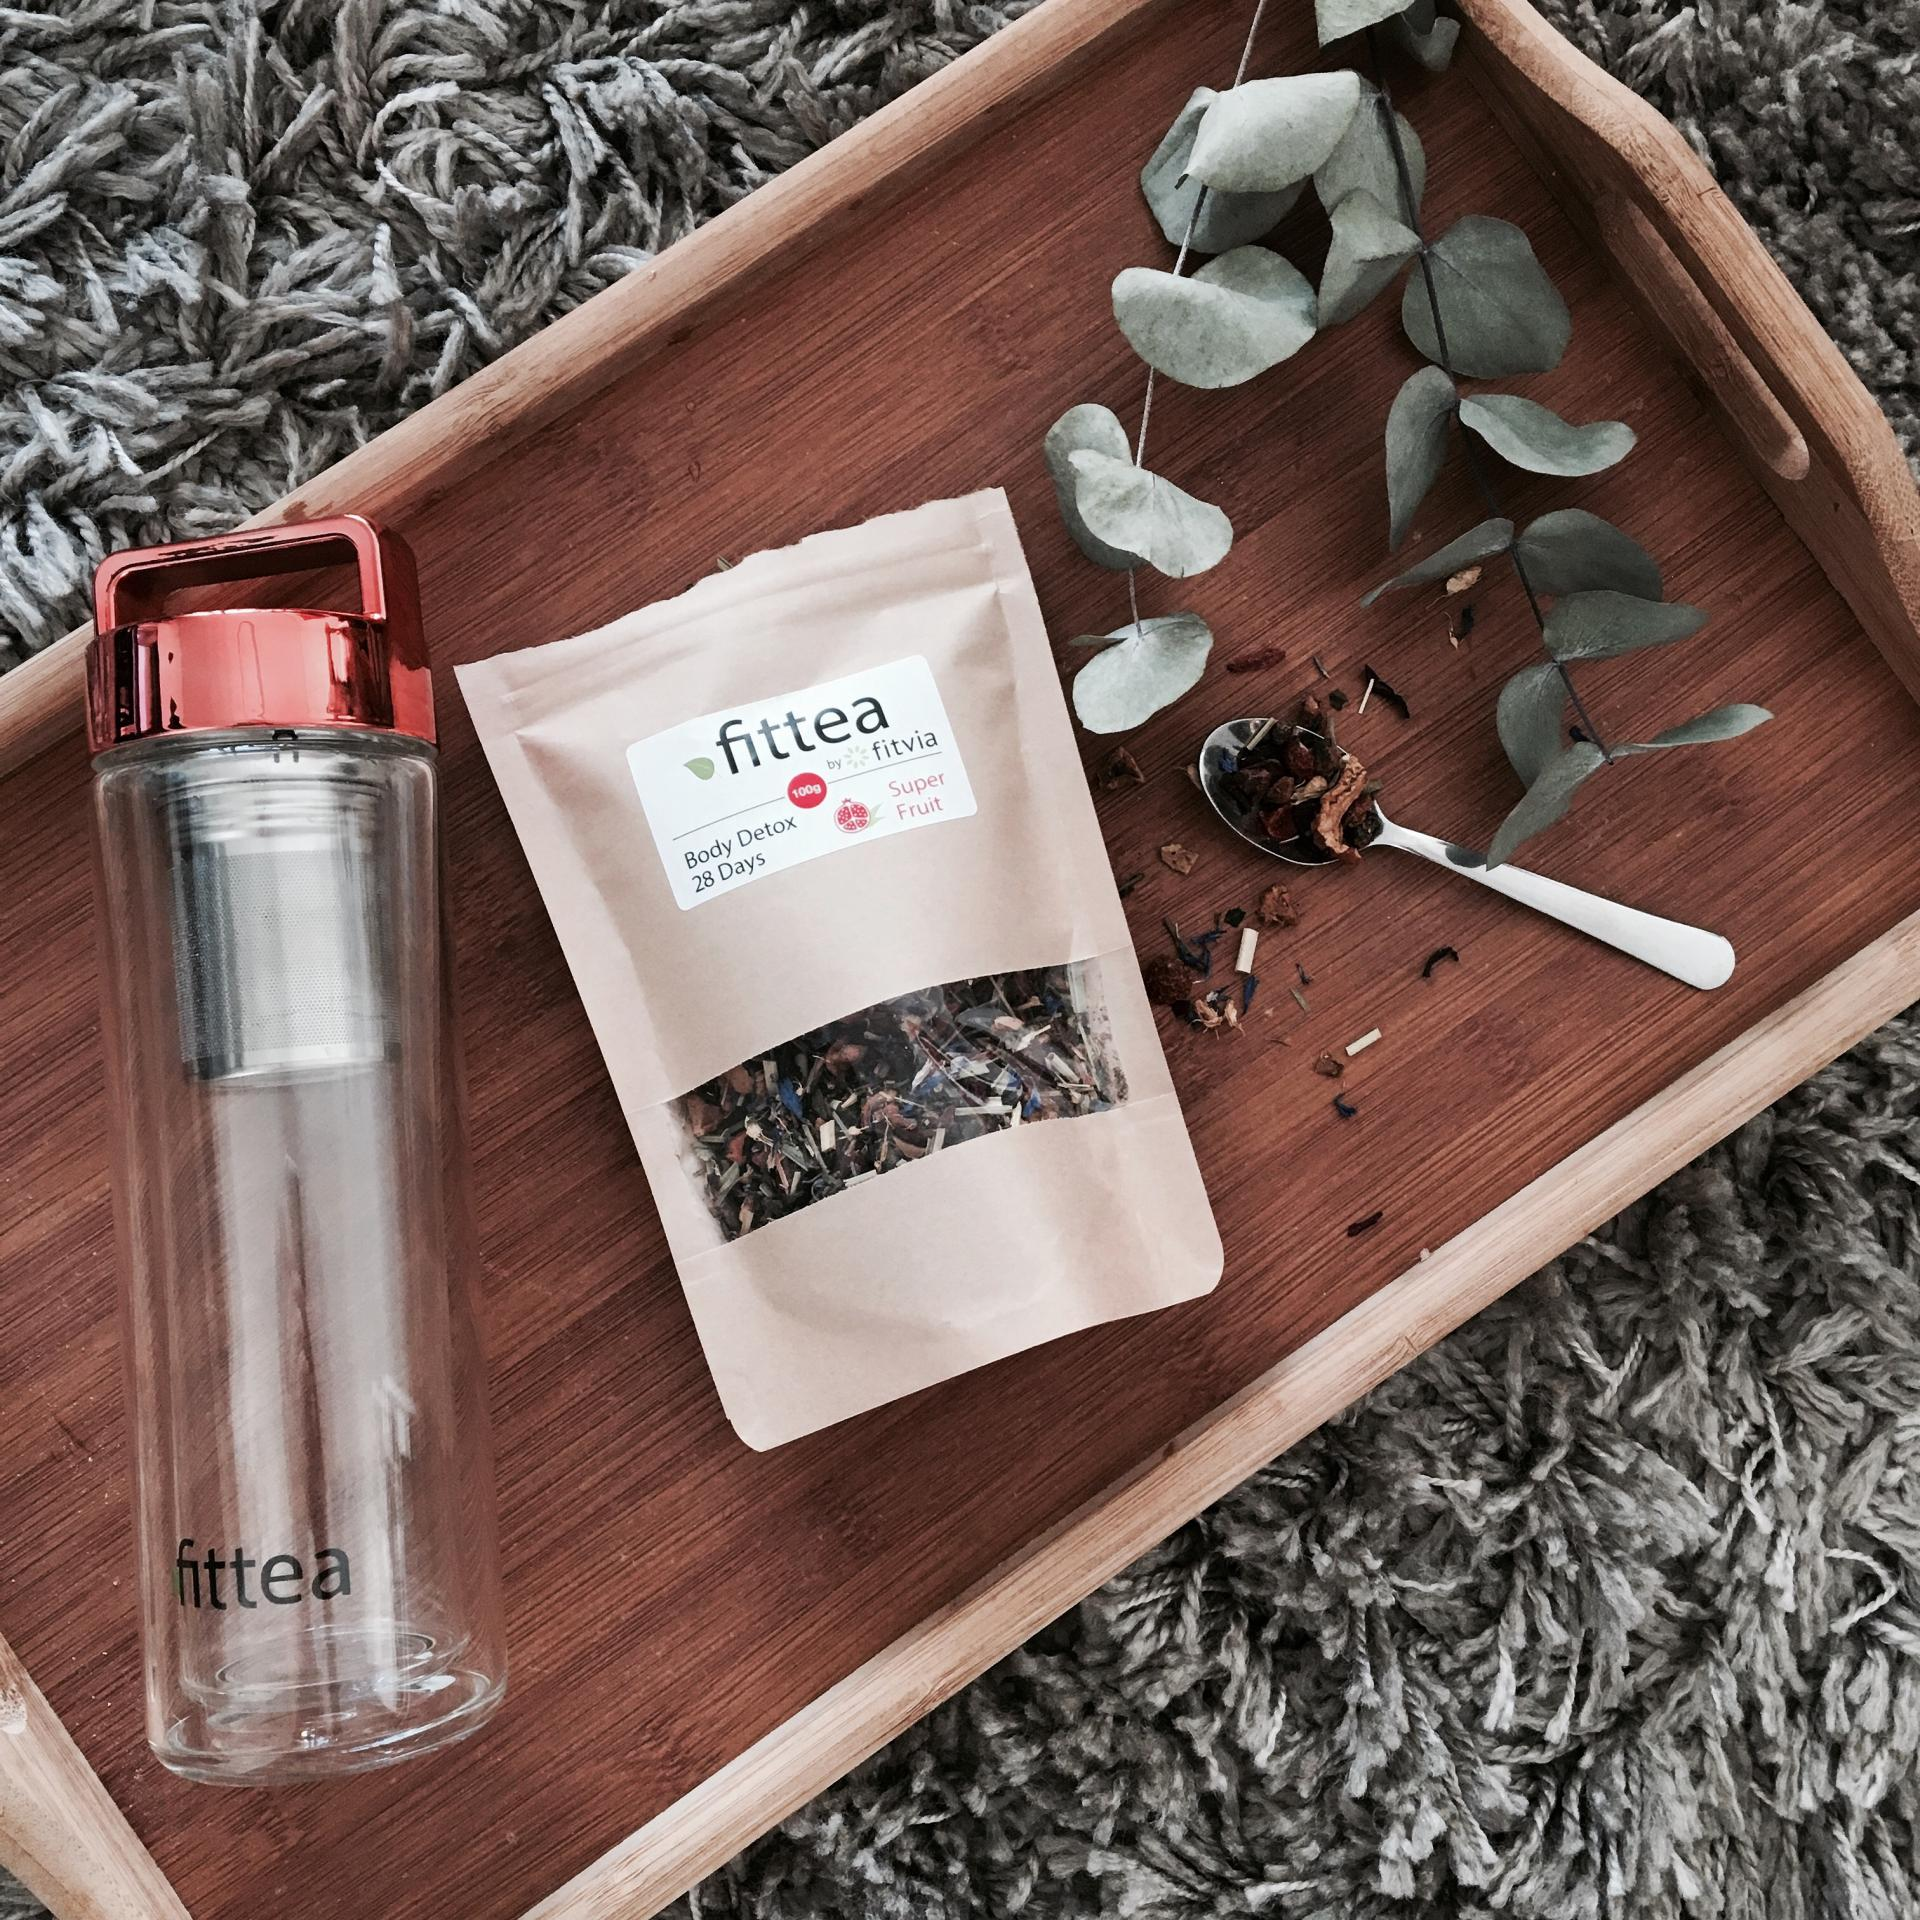 Cure détox, j'ai testé le Fit Berry Body Detox Tea de Fittea 🍵🌿🍃 + Code promo